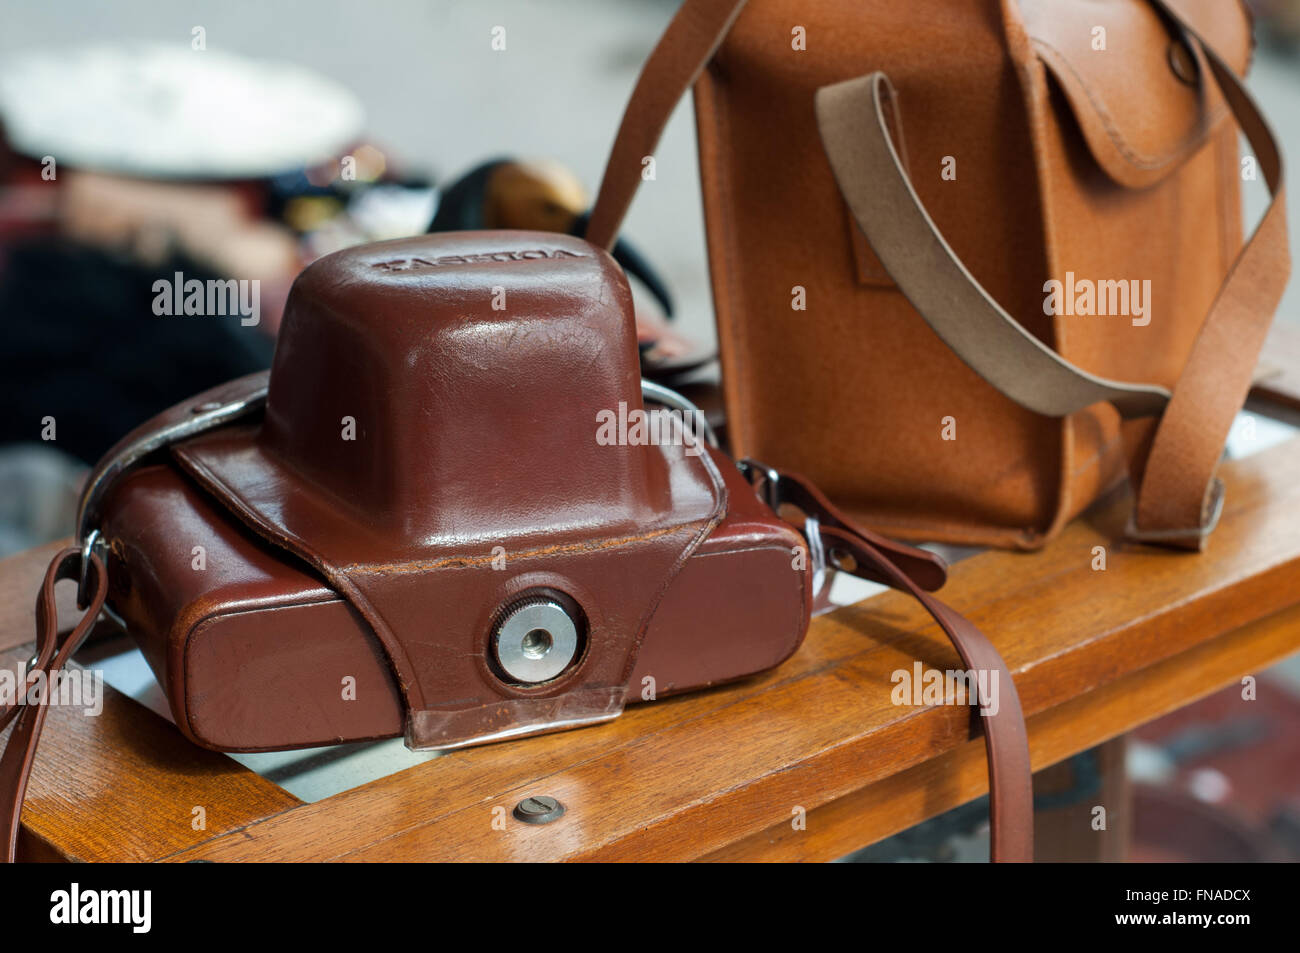 Old vintage 35mm slr camera in leather case pouch on photography market stall at carboot sale in Bath, UK. - Stock Image